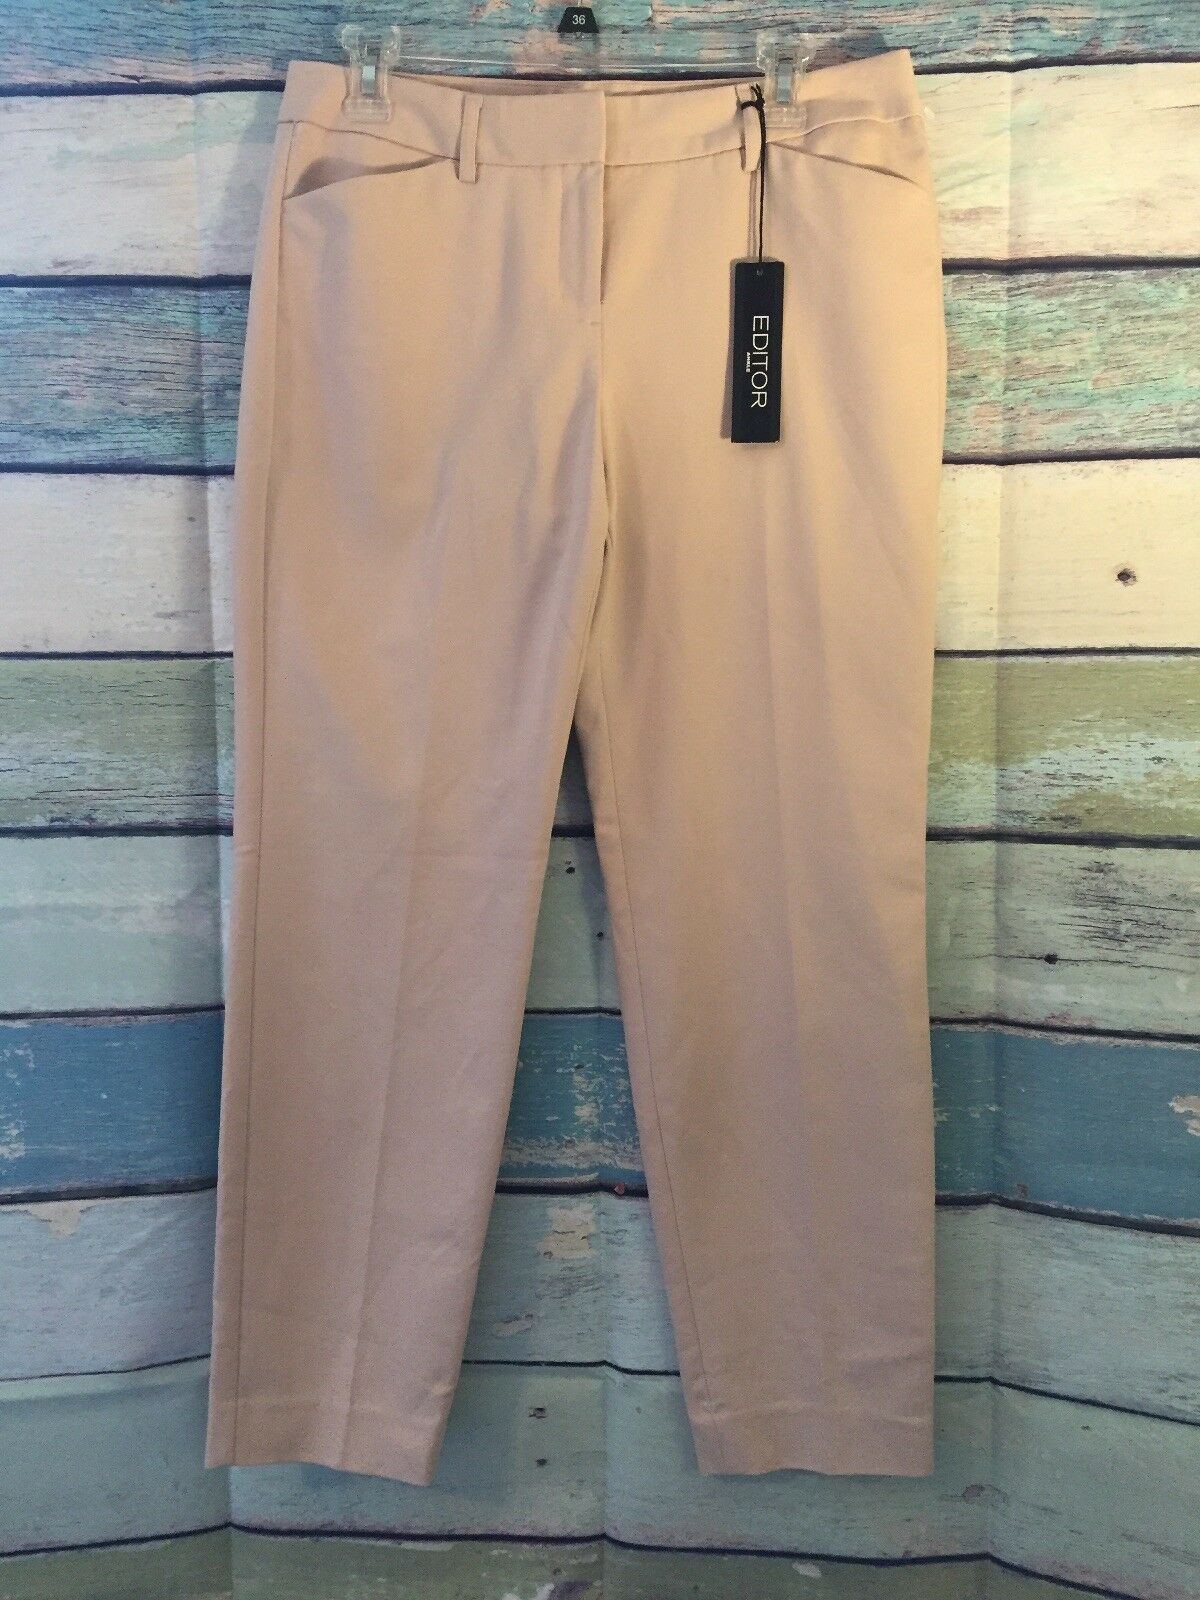 Express Editor Ankle Cream colord Women's Pant Size 6R NWT